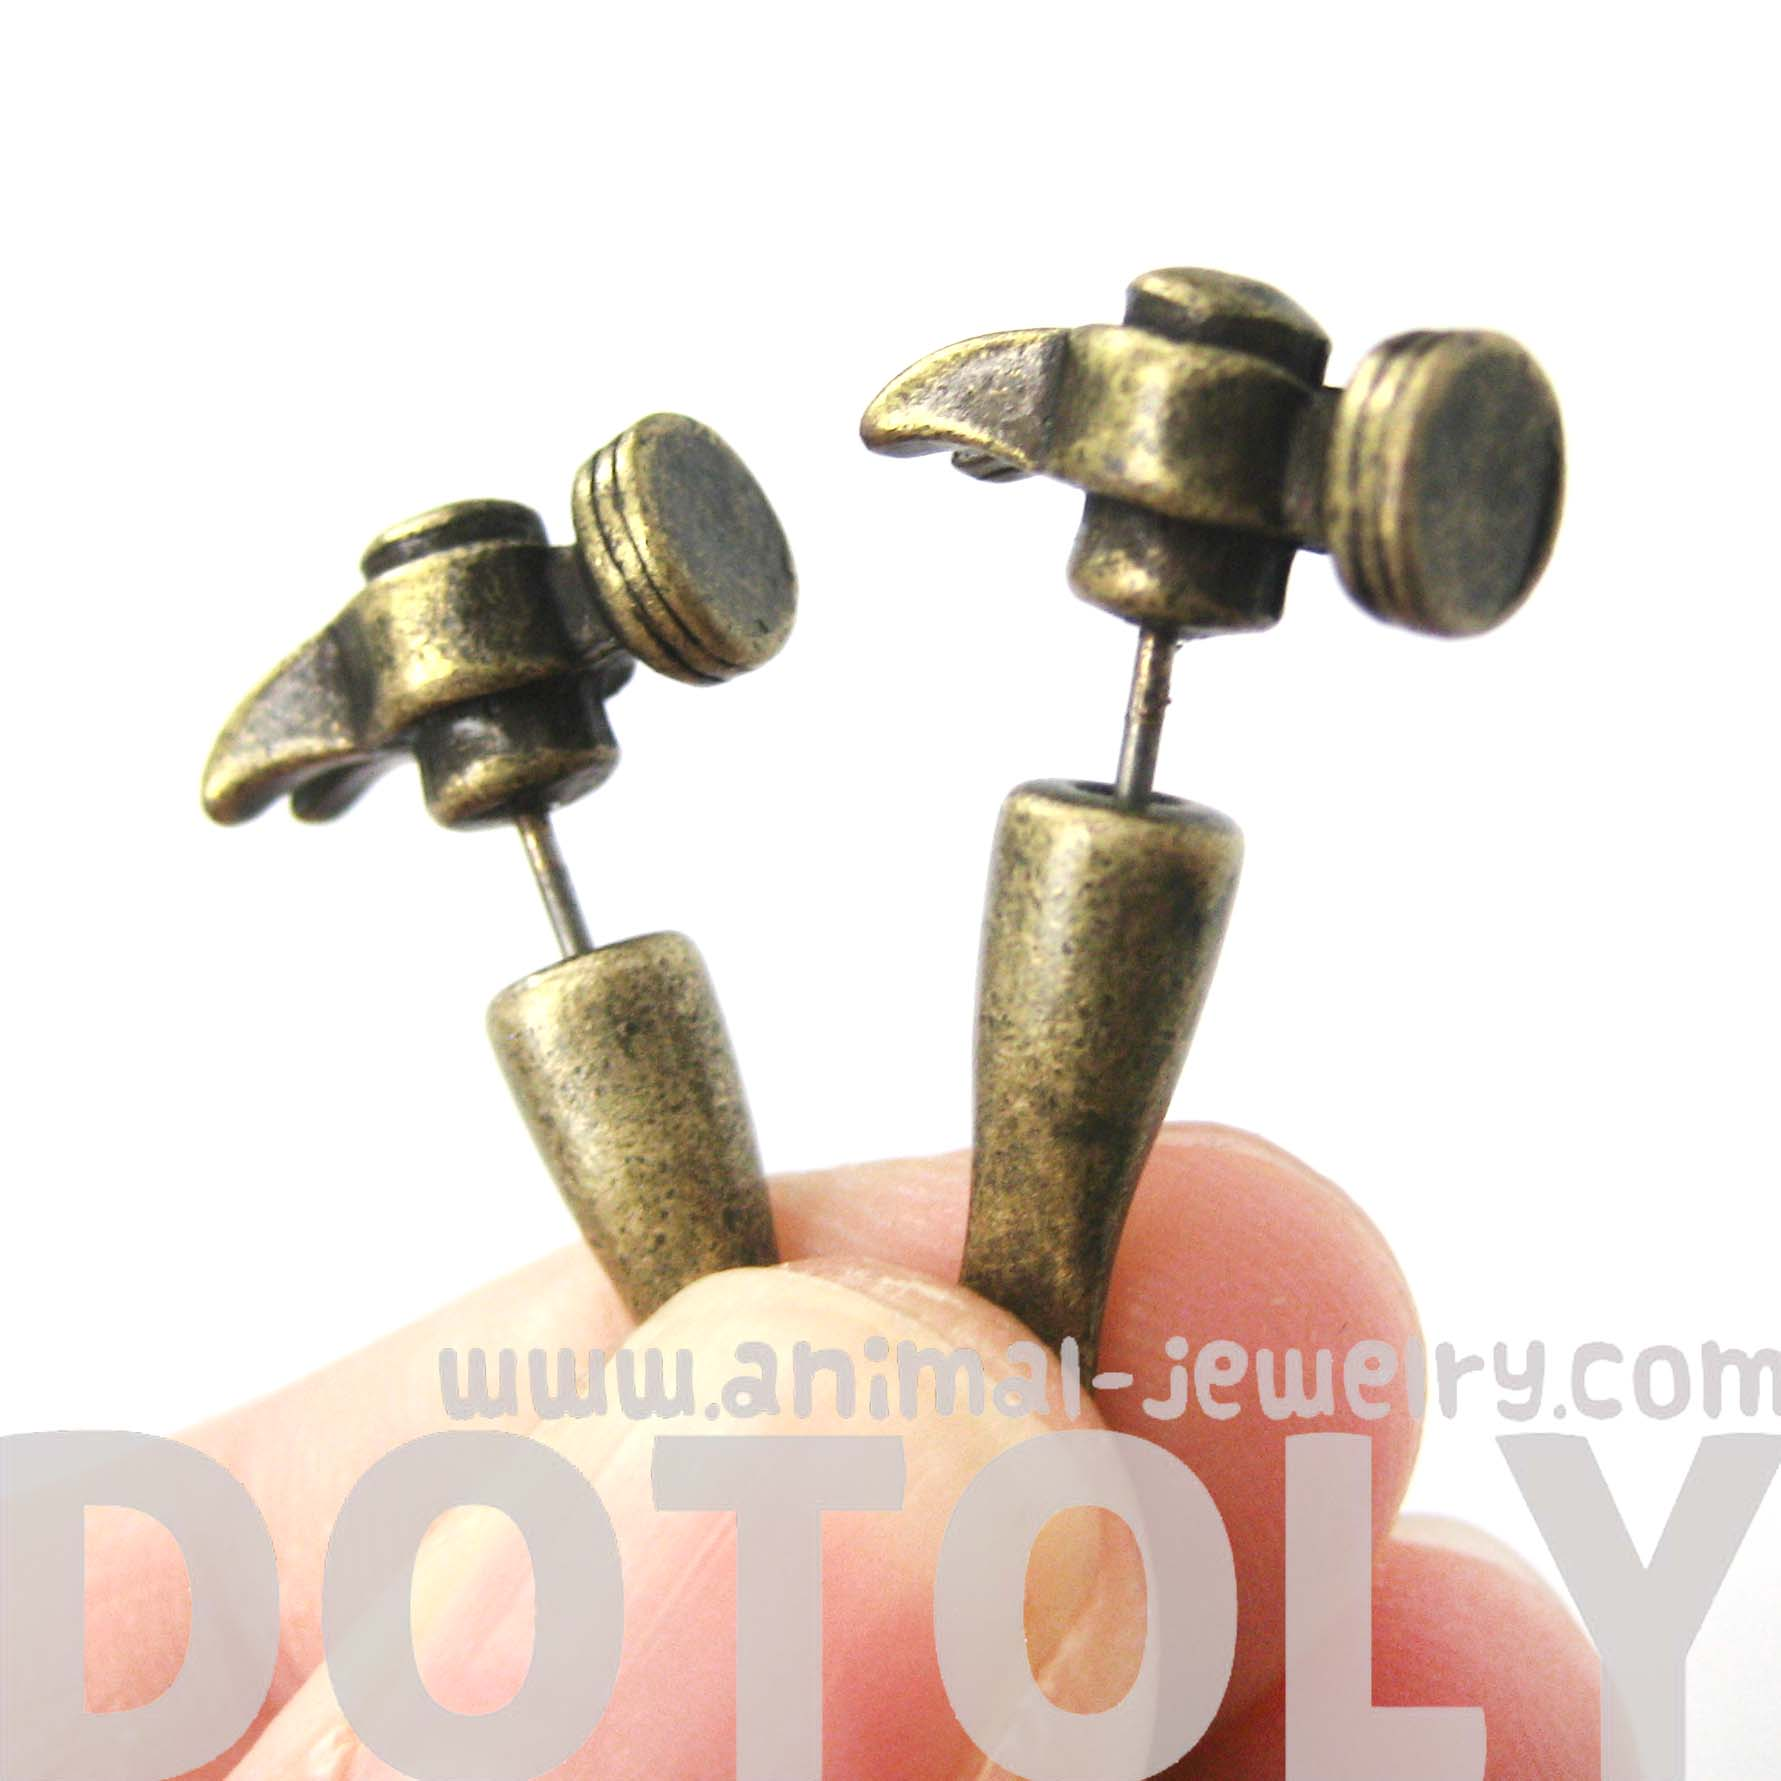 fake-gauge-earrings-realistic-hammer-shaped-faux-plug-stud-earrings-in-bronze